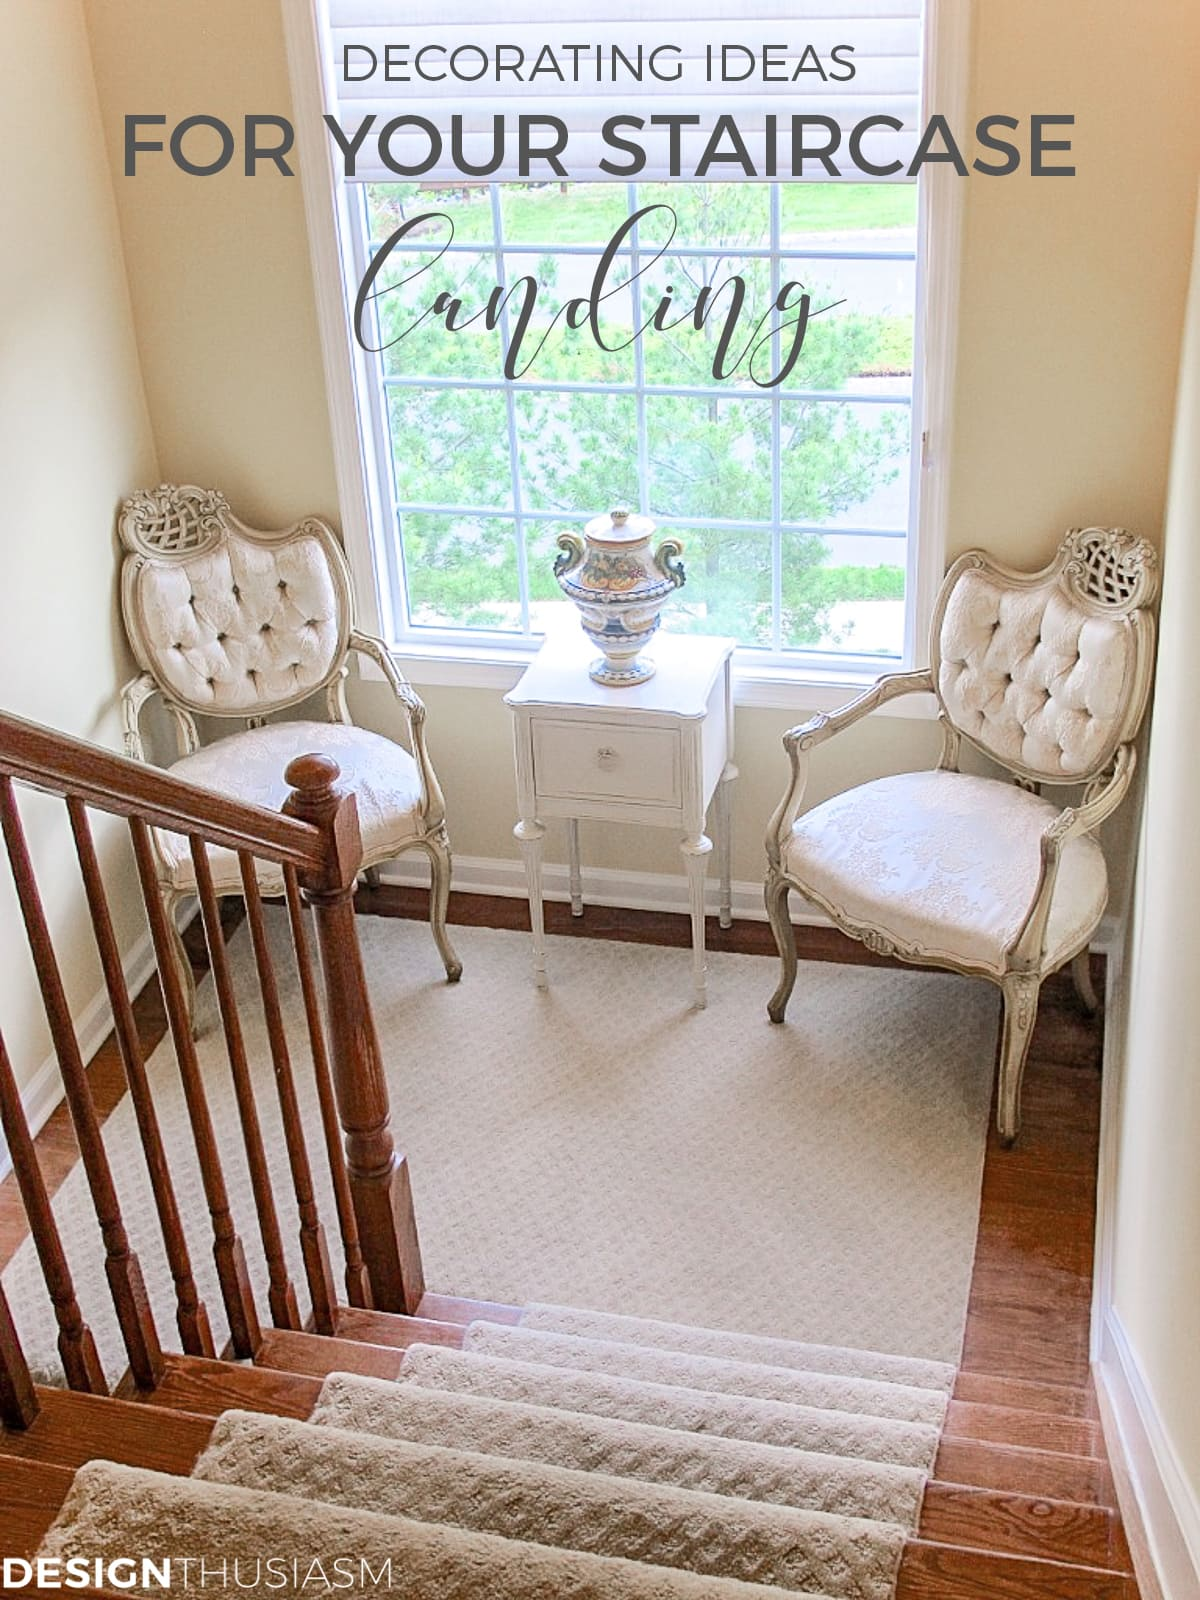 Staircase decorating ideas french chairs and a petit table